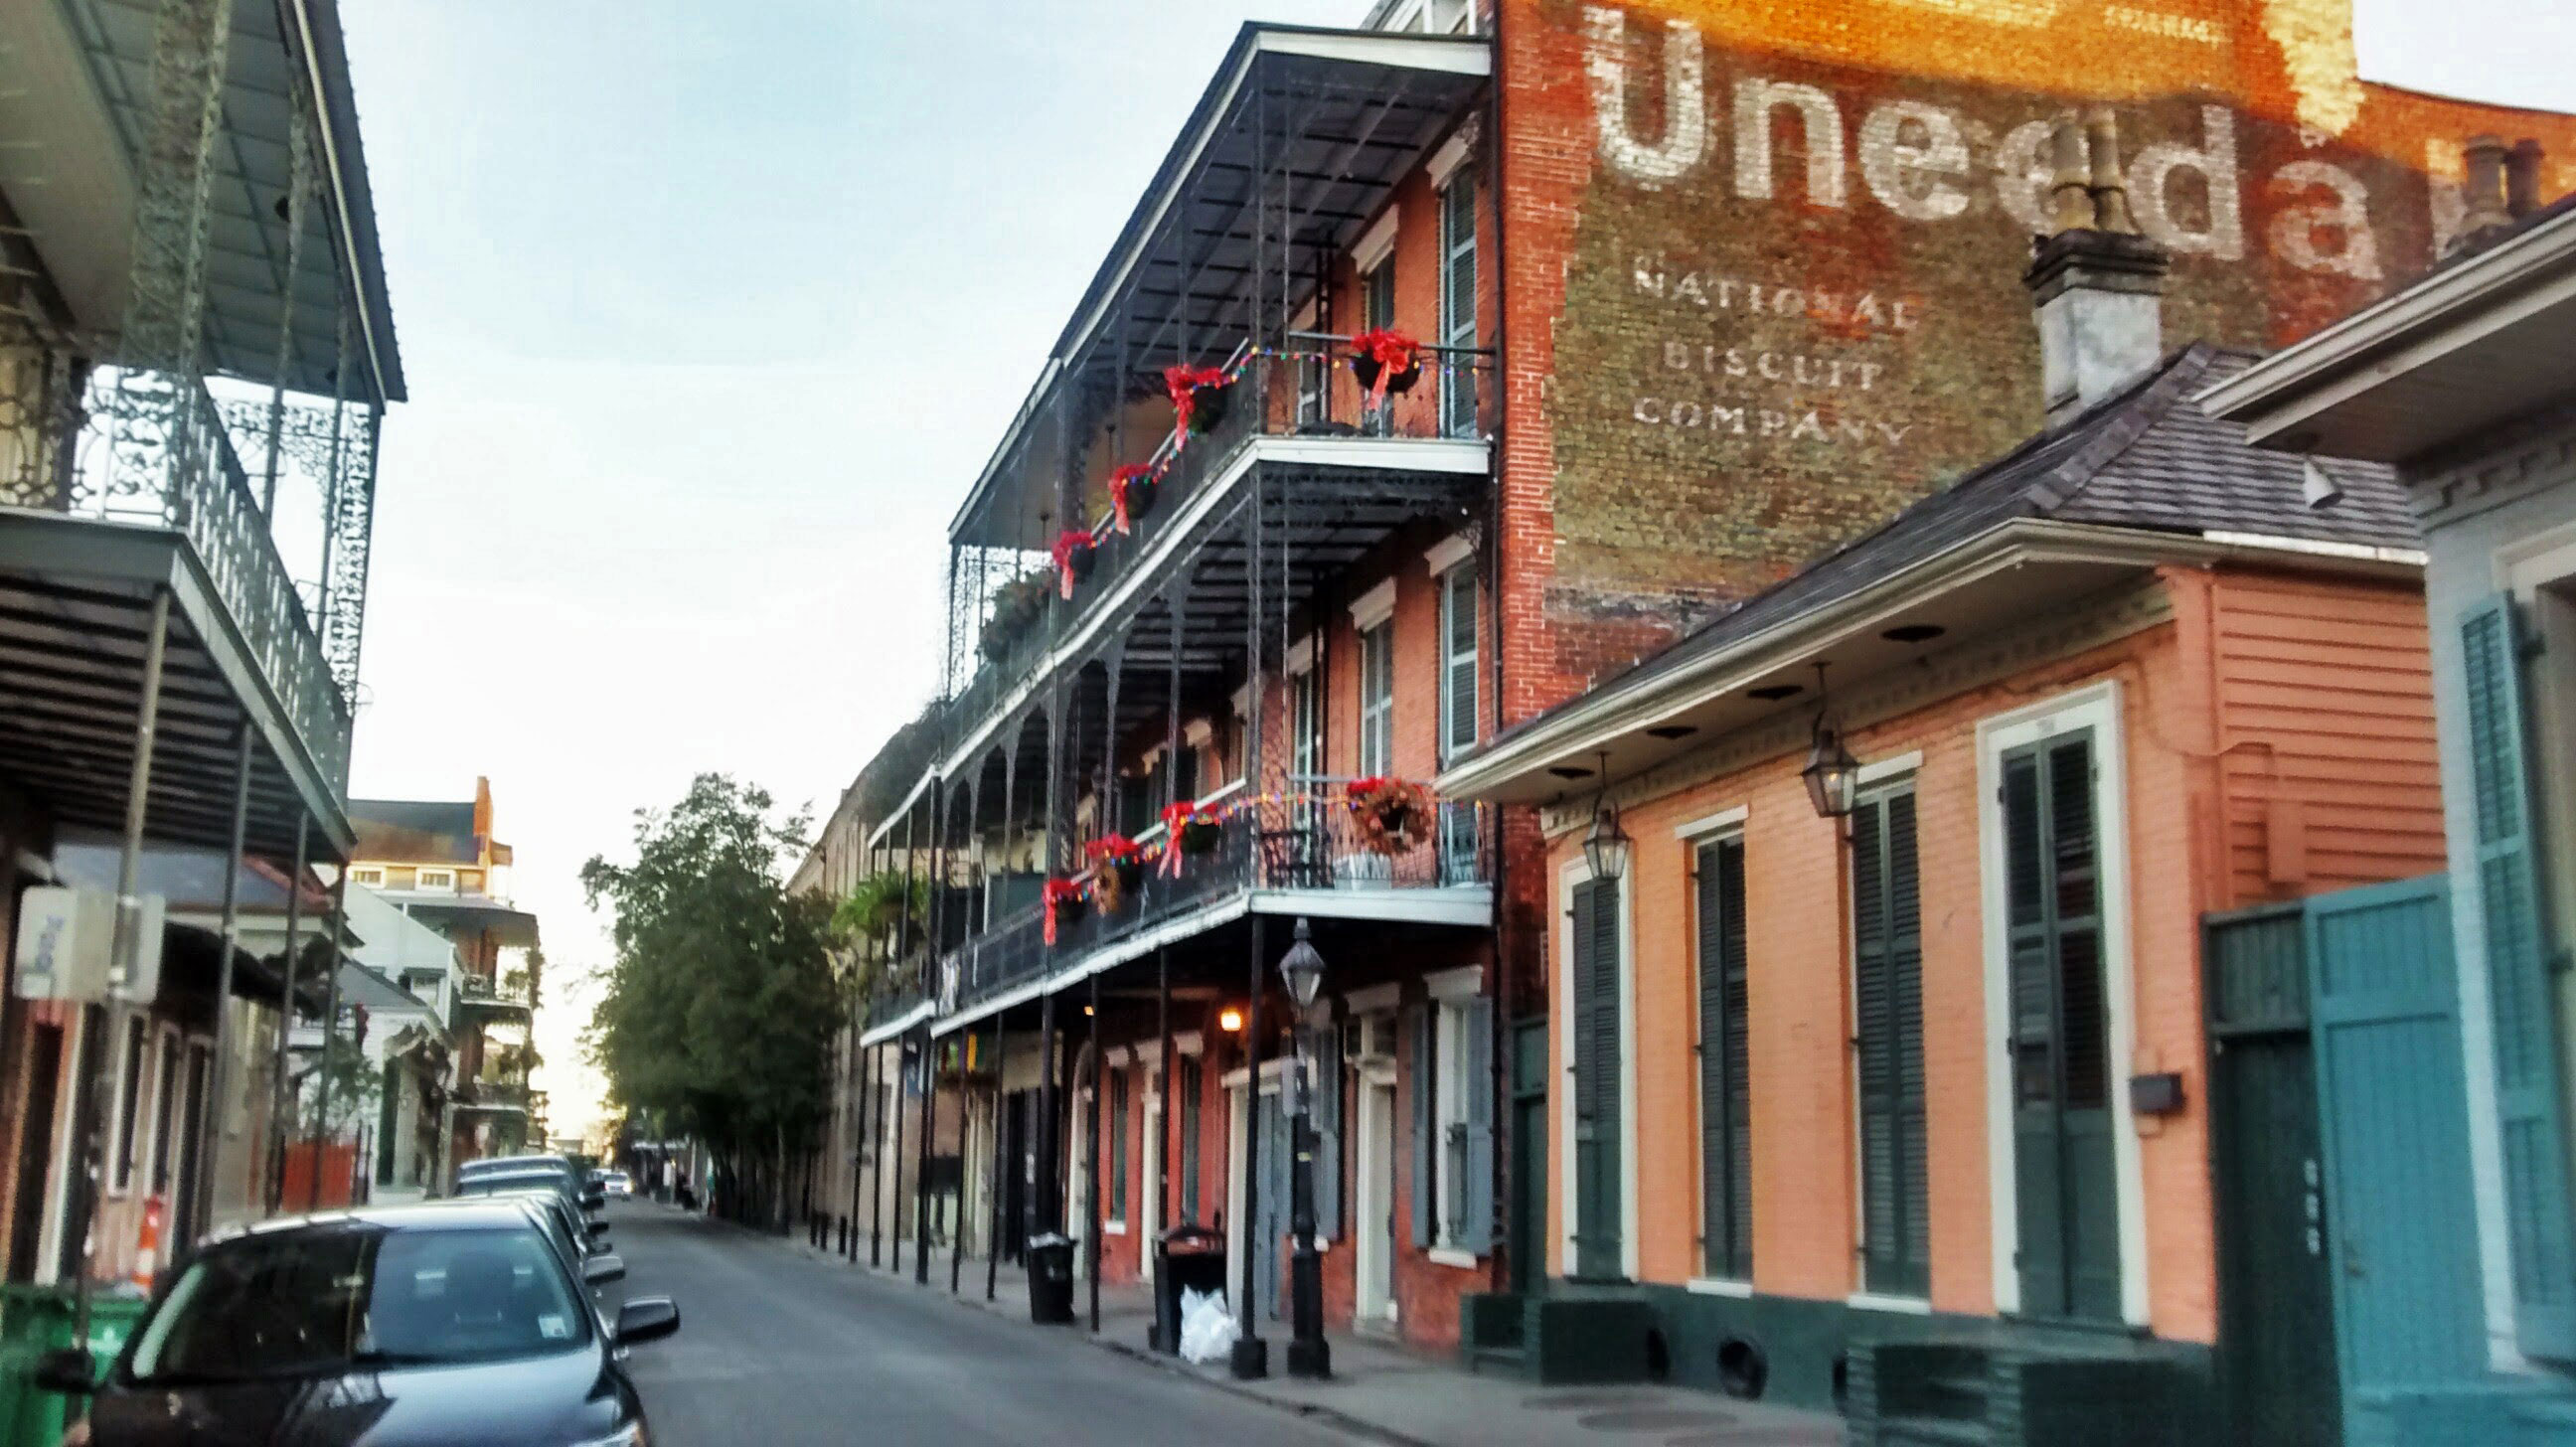 NewOrleansThumbnail 1920x1079 - Visiting New Orleans In January: Top 8 Things To Do